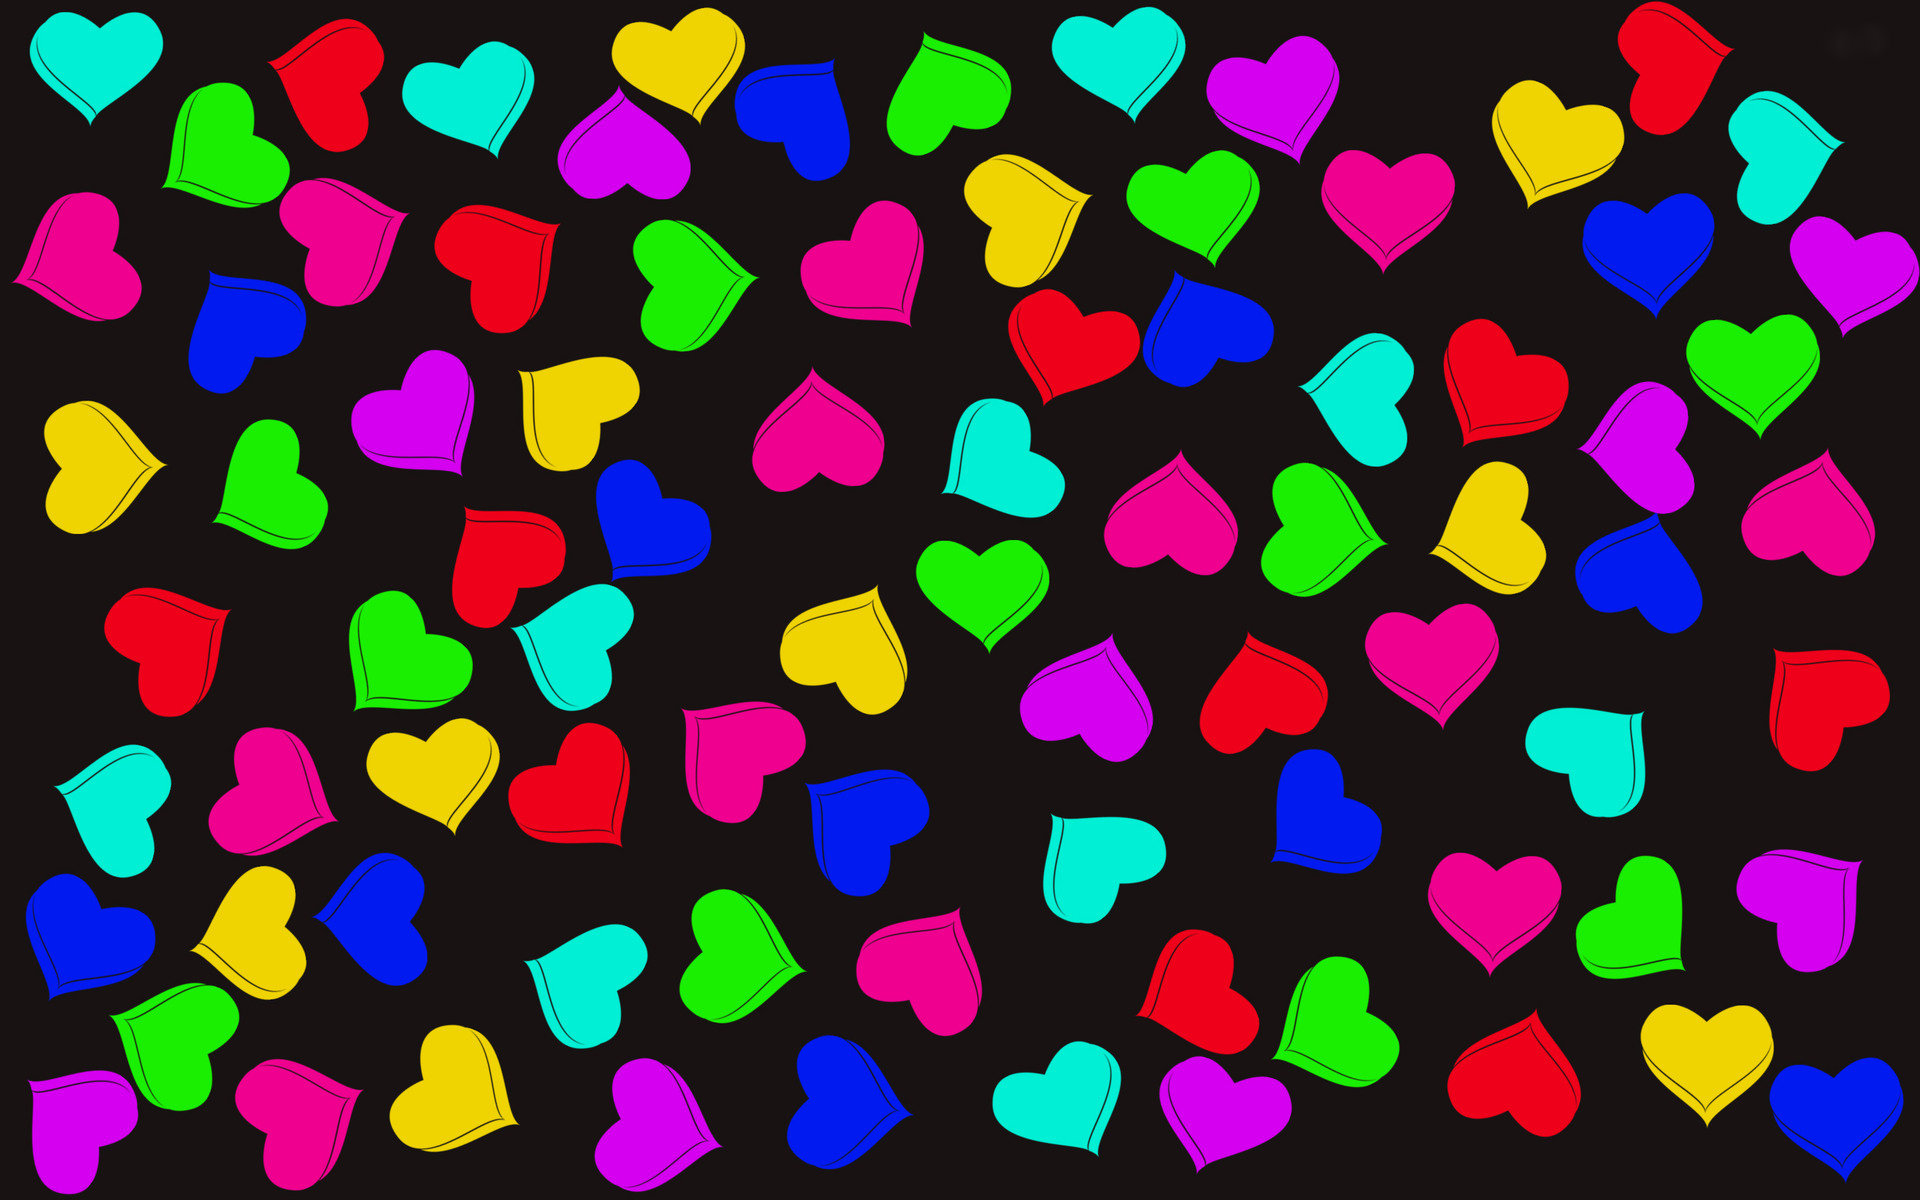 3D Heart Wallpaper - WallpaperSafari